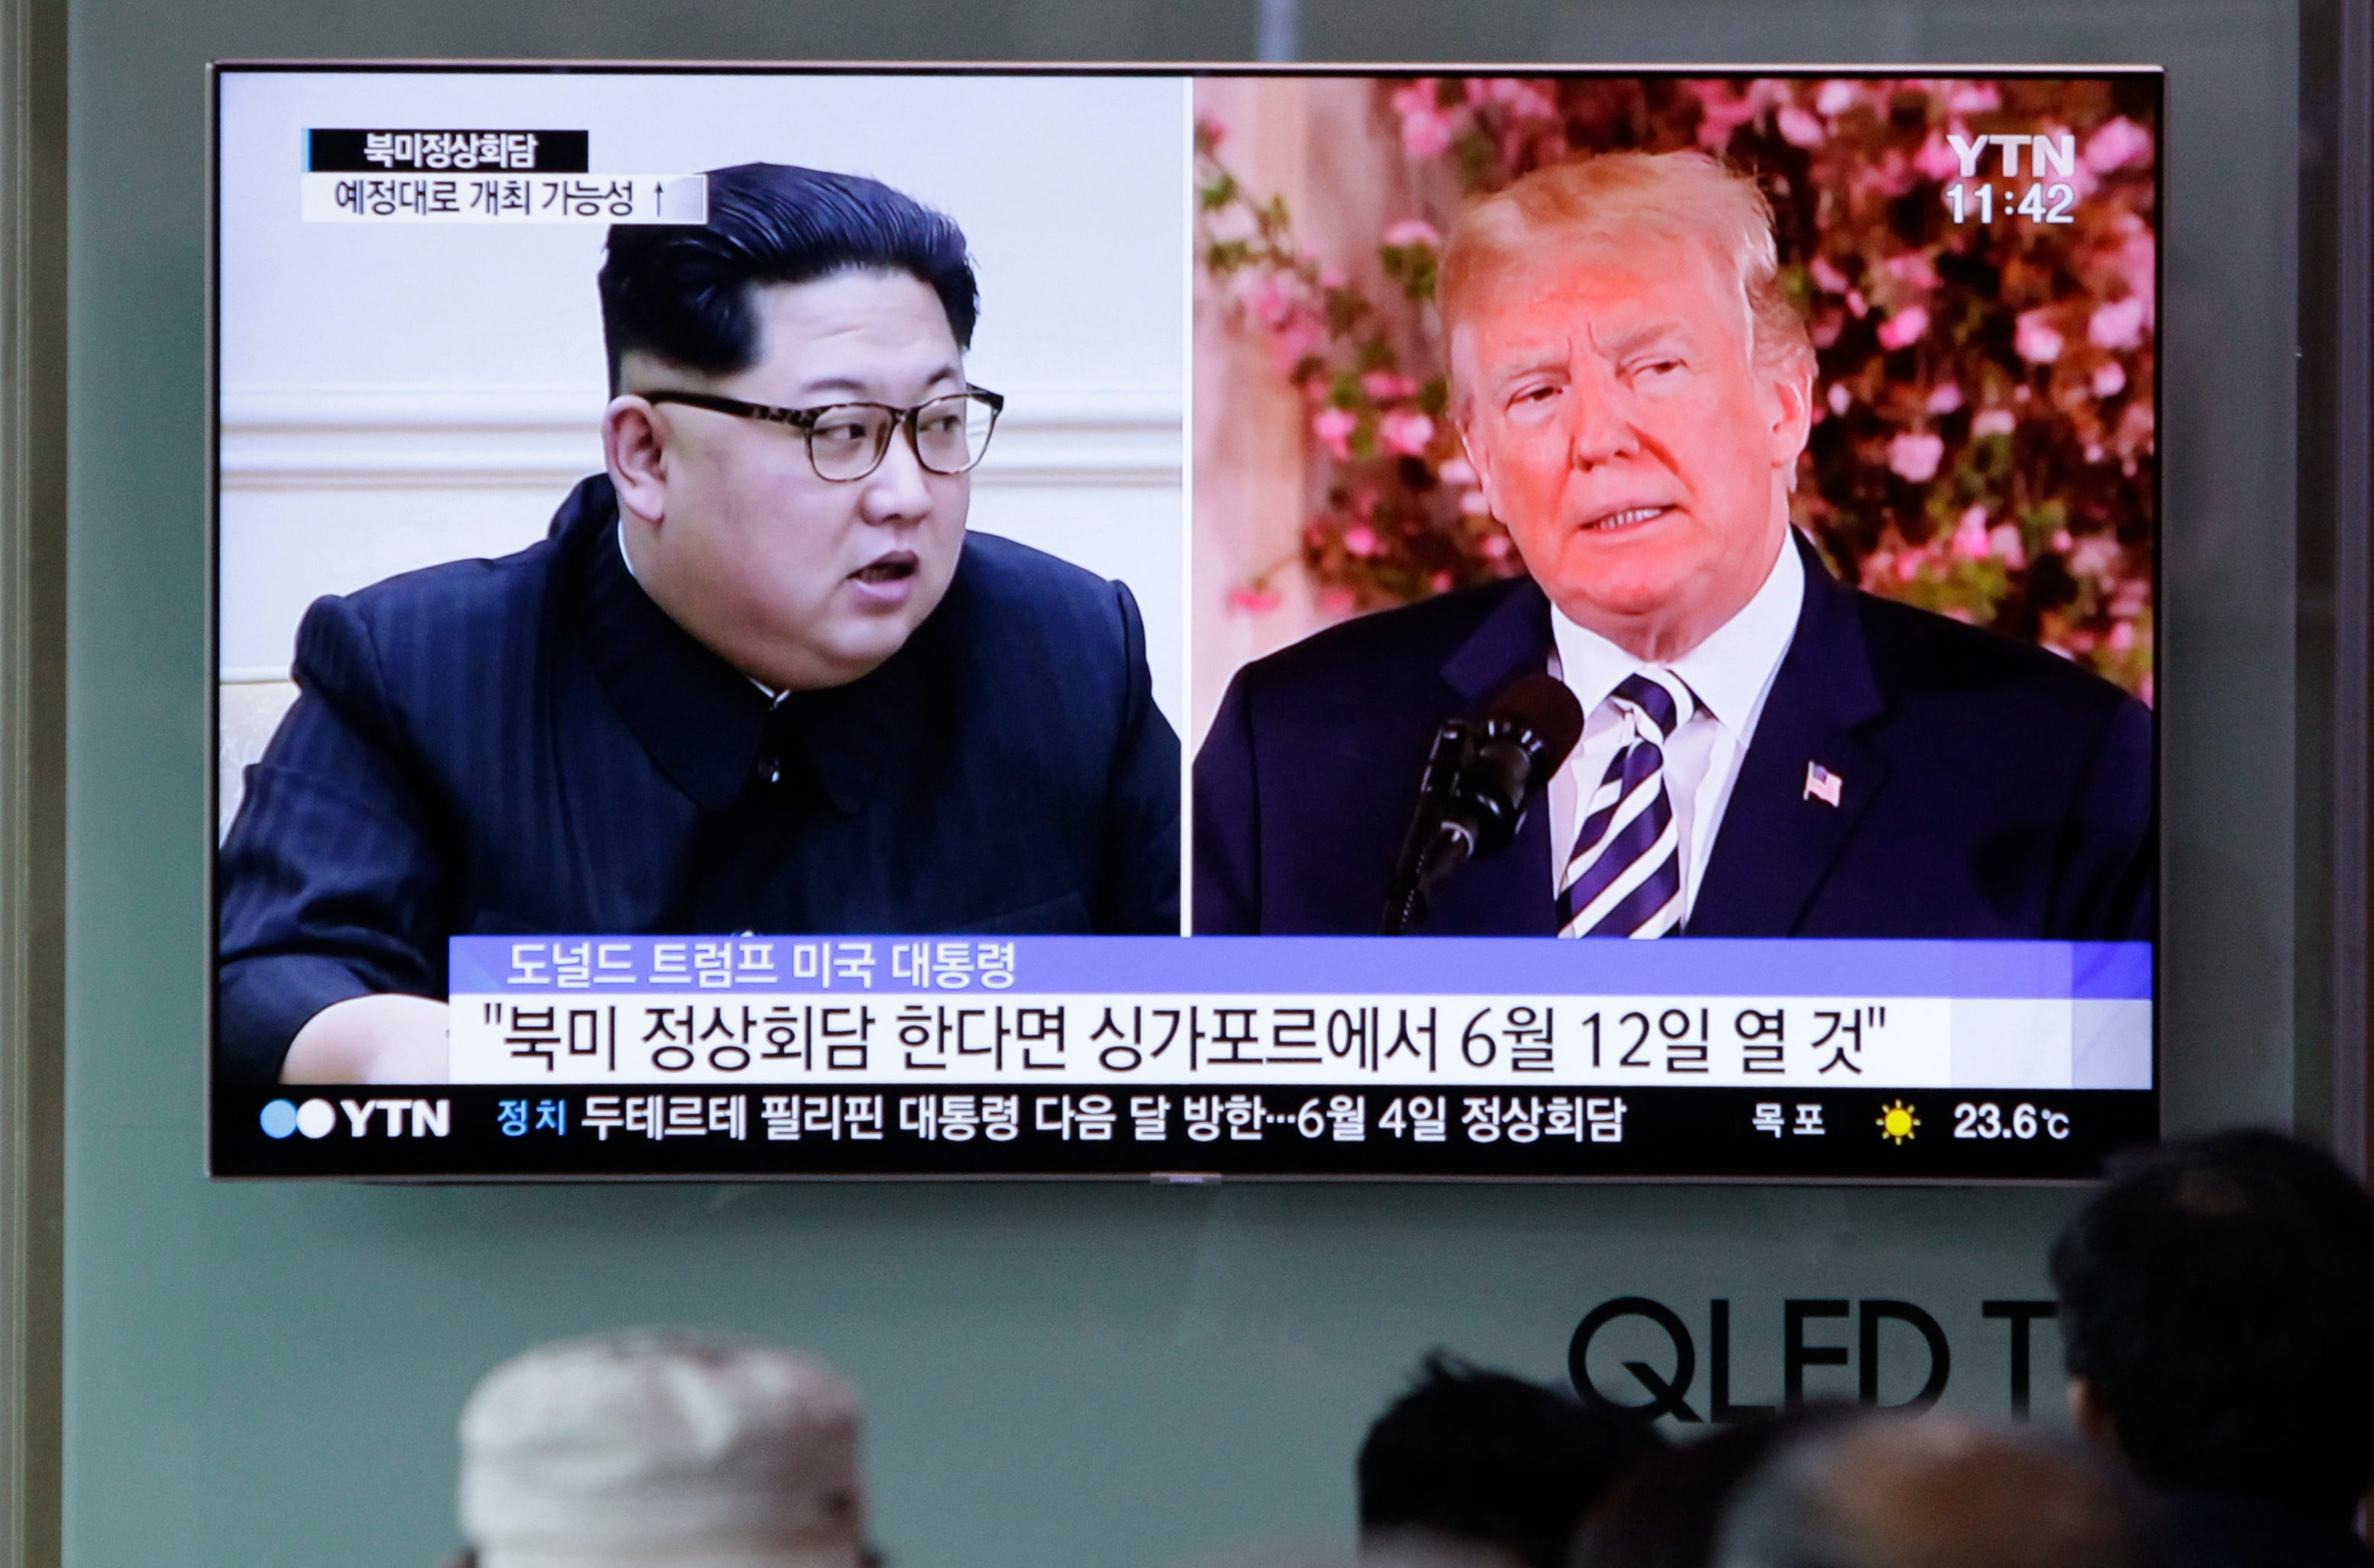 Trump's goal of total 'denuclearization' of North Korea is a long shot